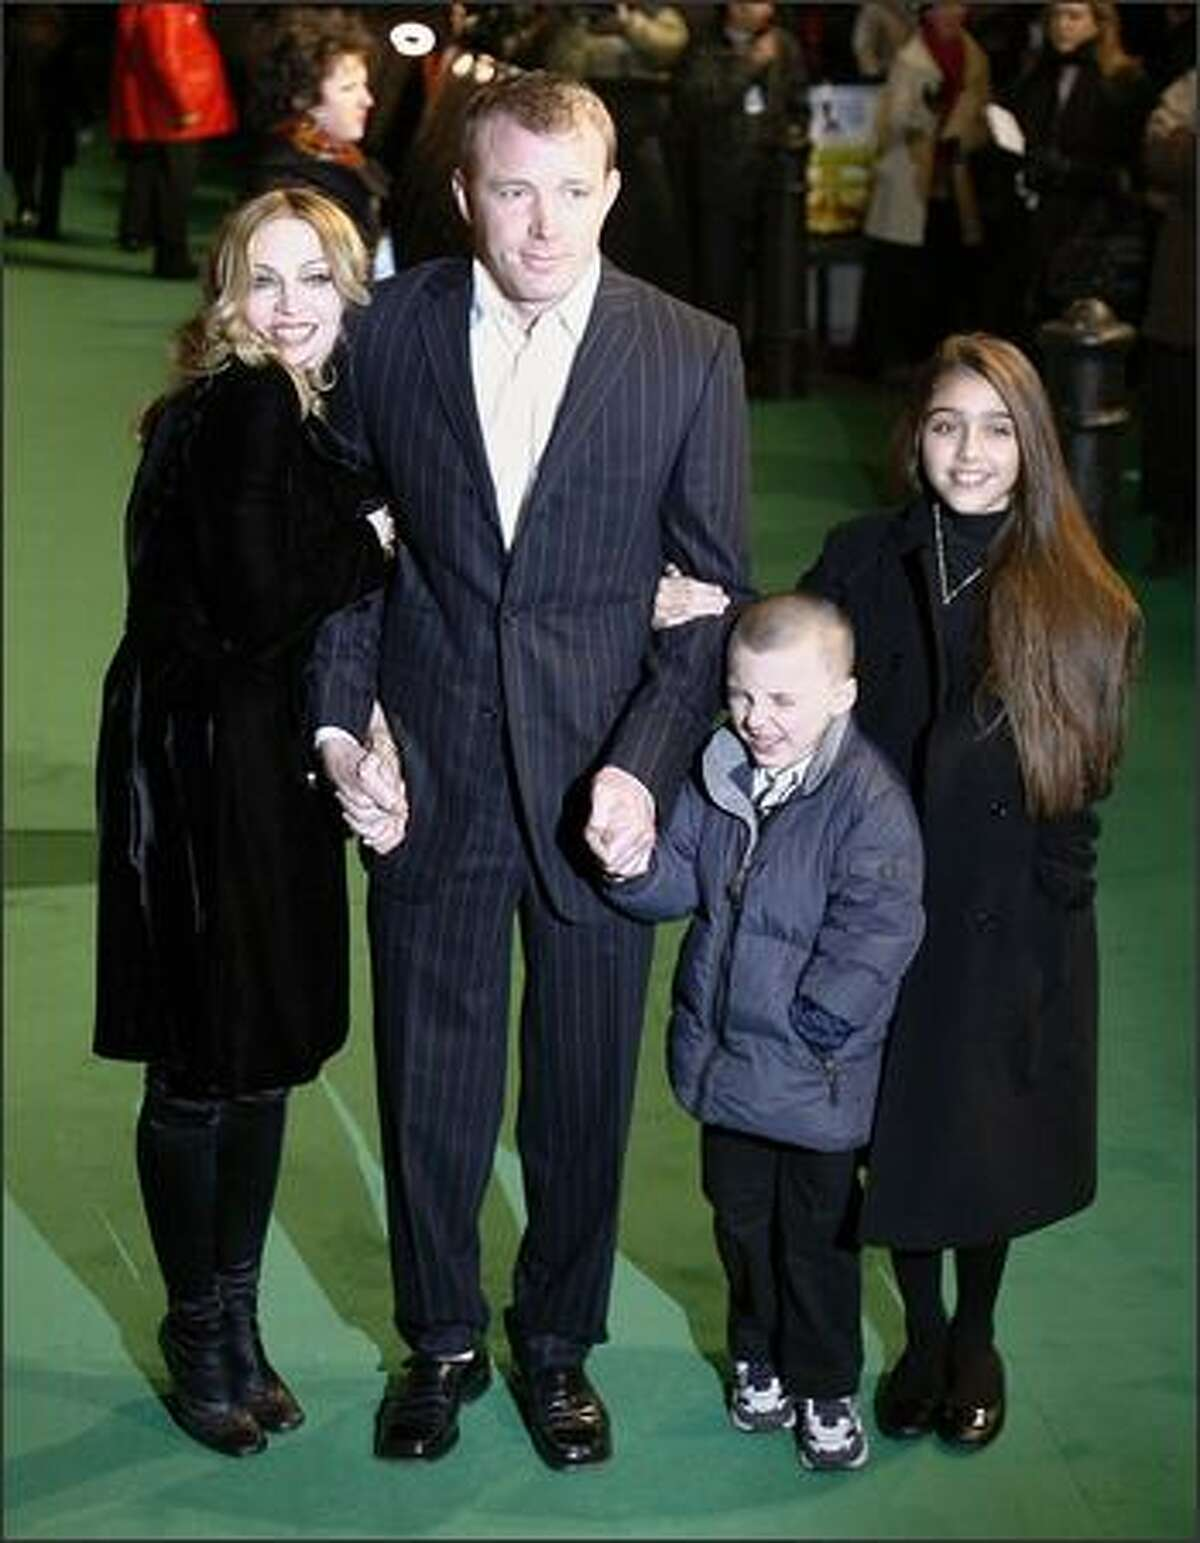 Madonna and then-husband Guy Ritchie stand with their children Rocco and Lourdes as they attend the premiere of the film